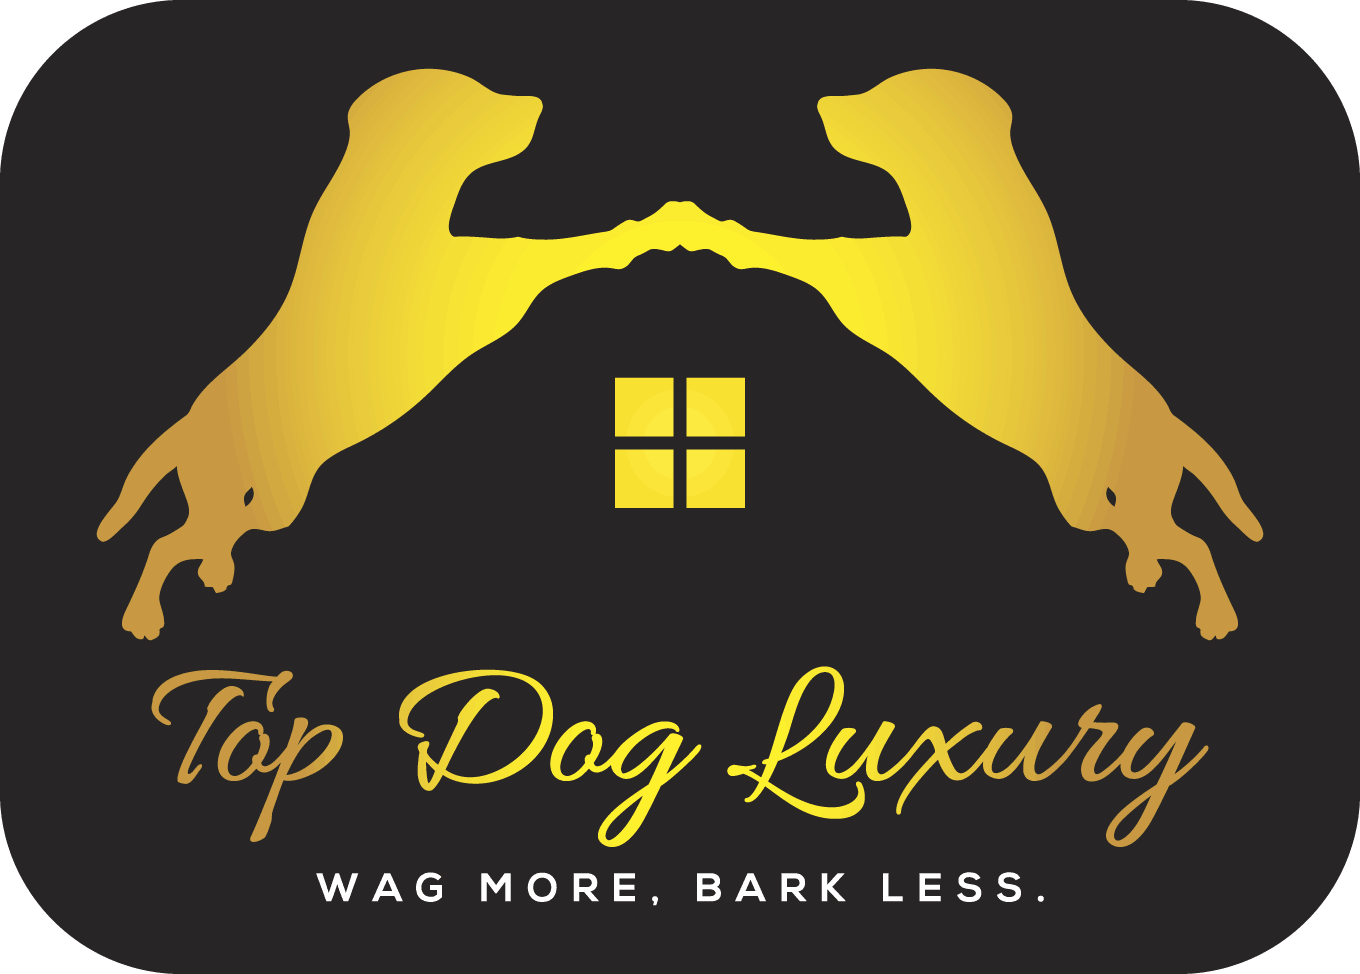 Top Dog Properties logo, large